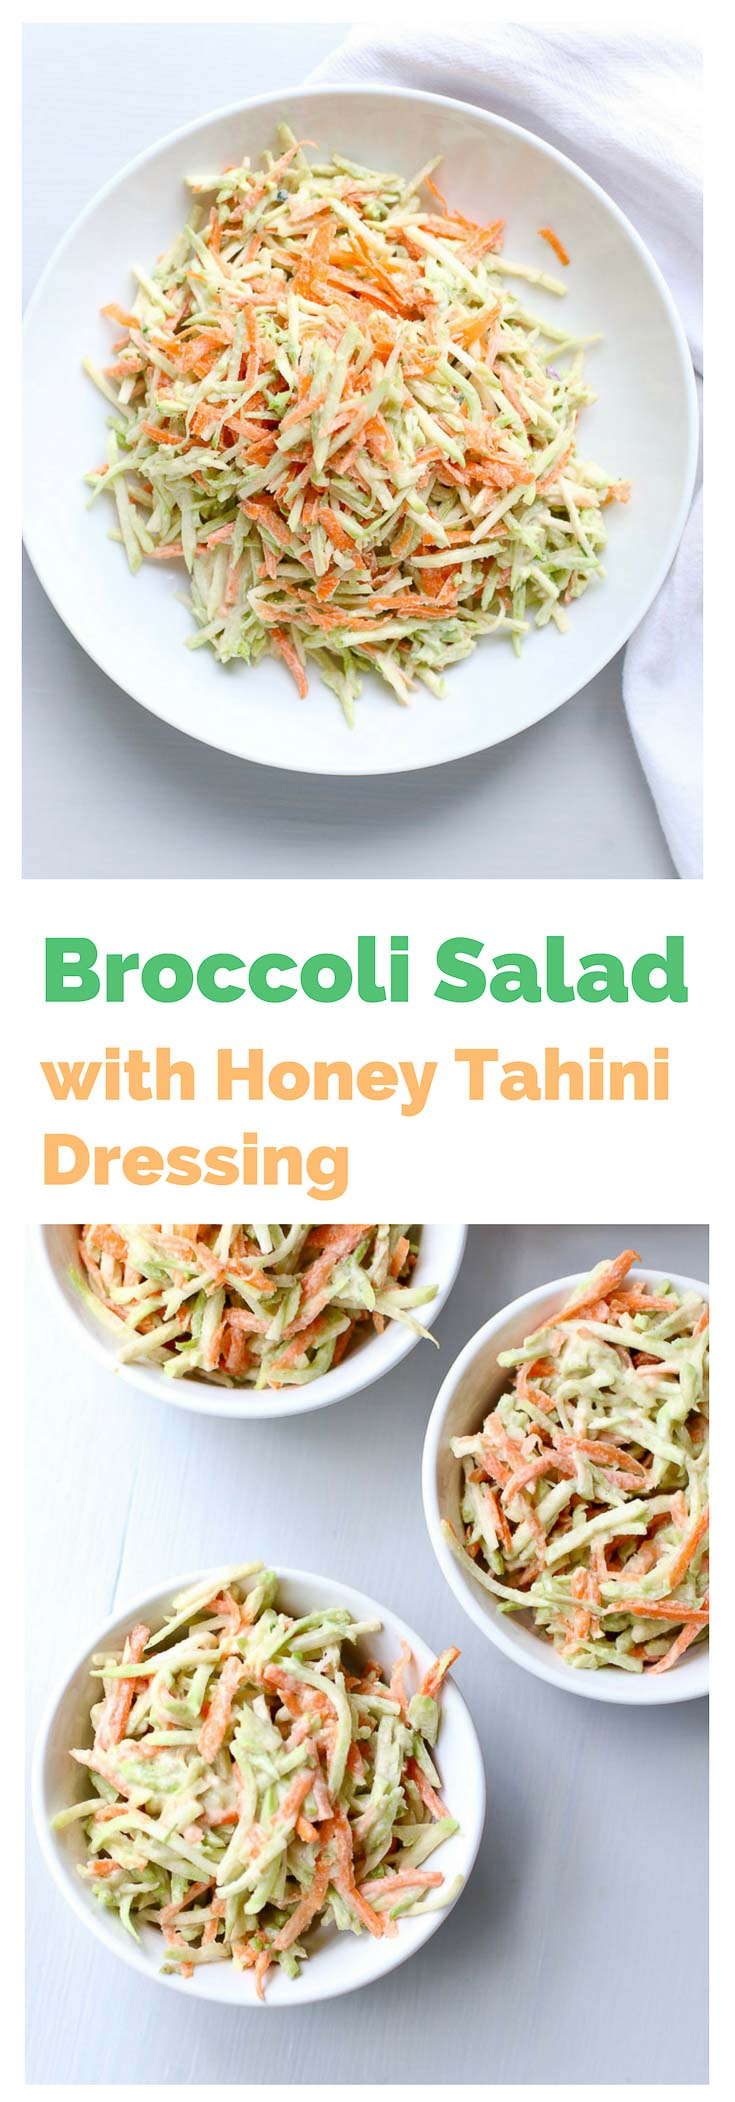 Broccoli Salad with Tahini Dressing